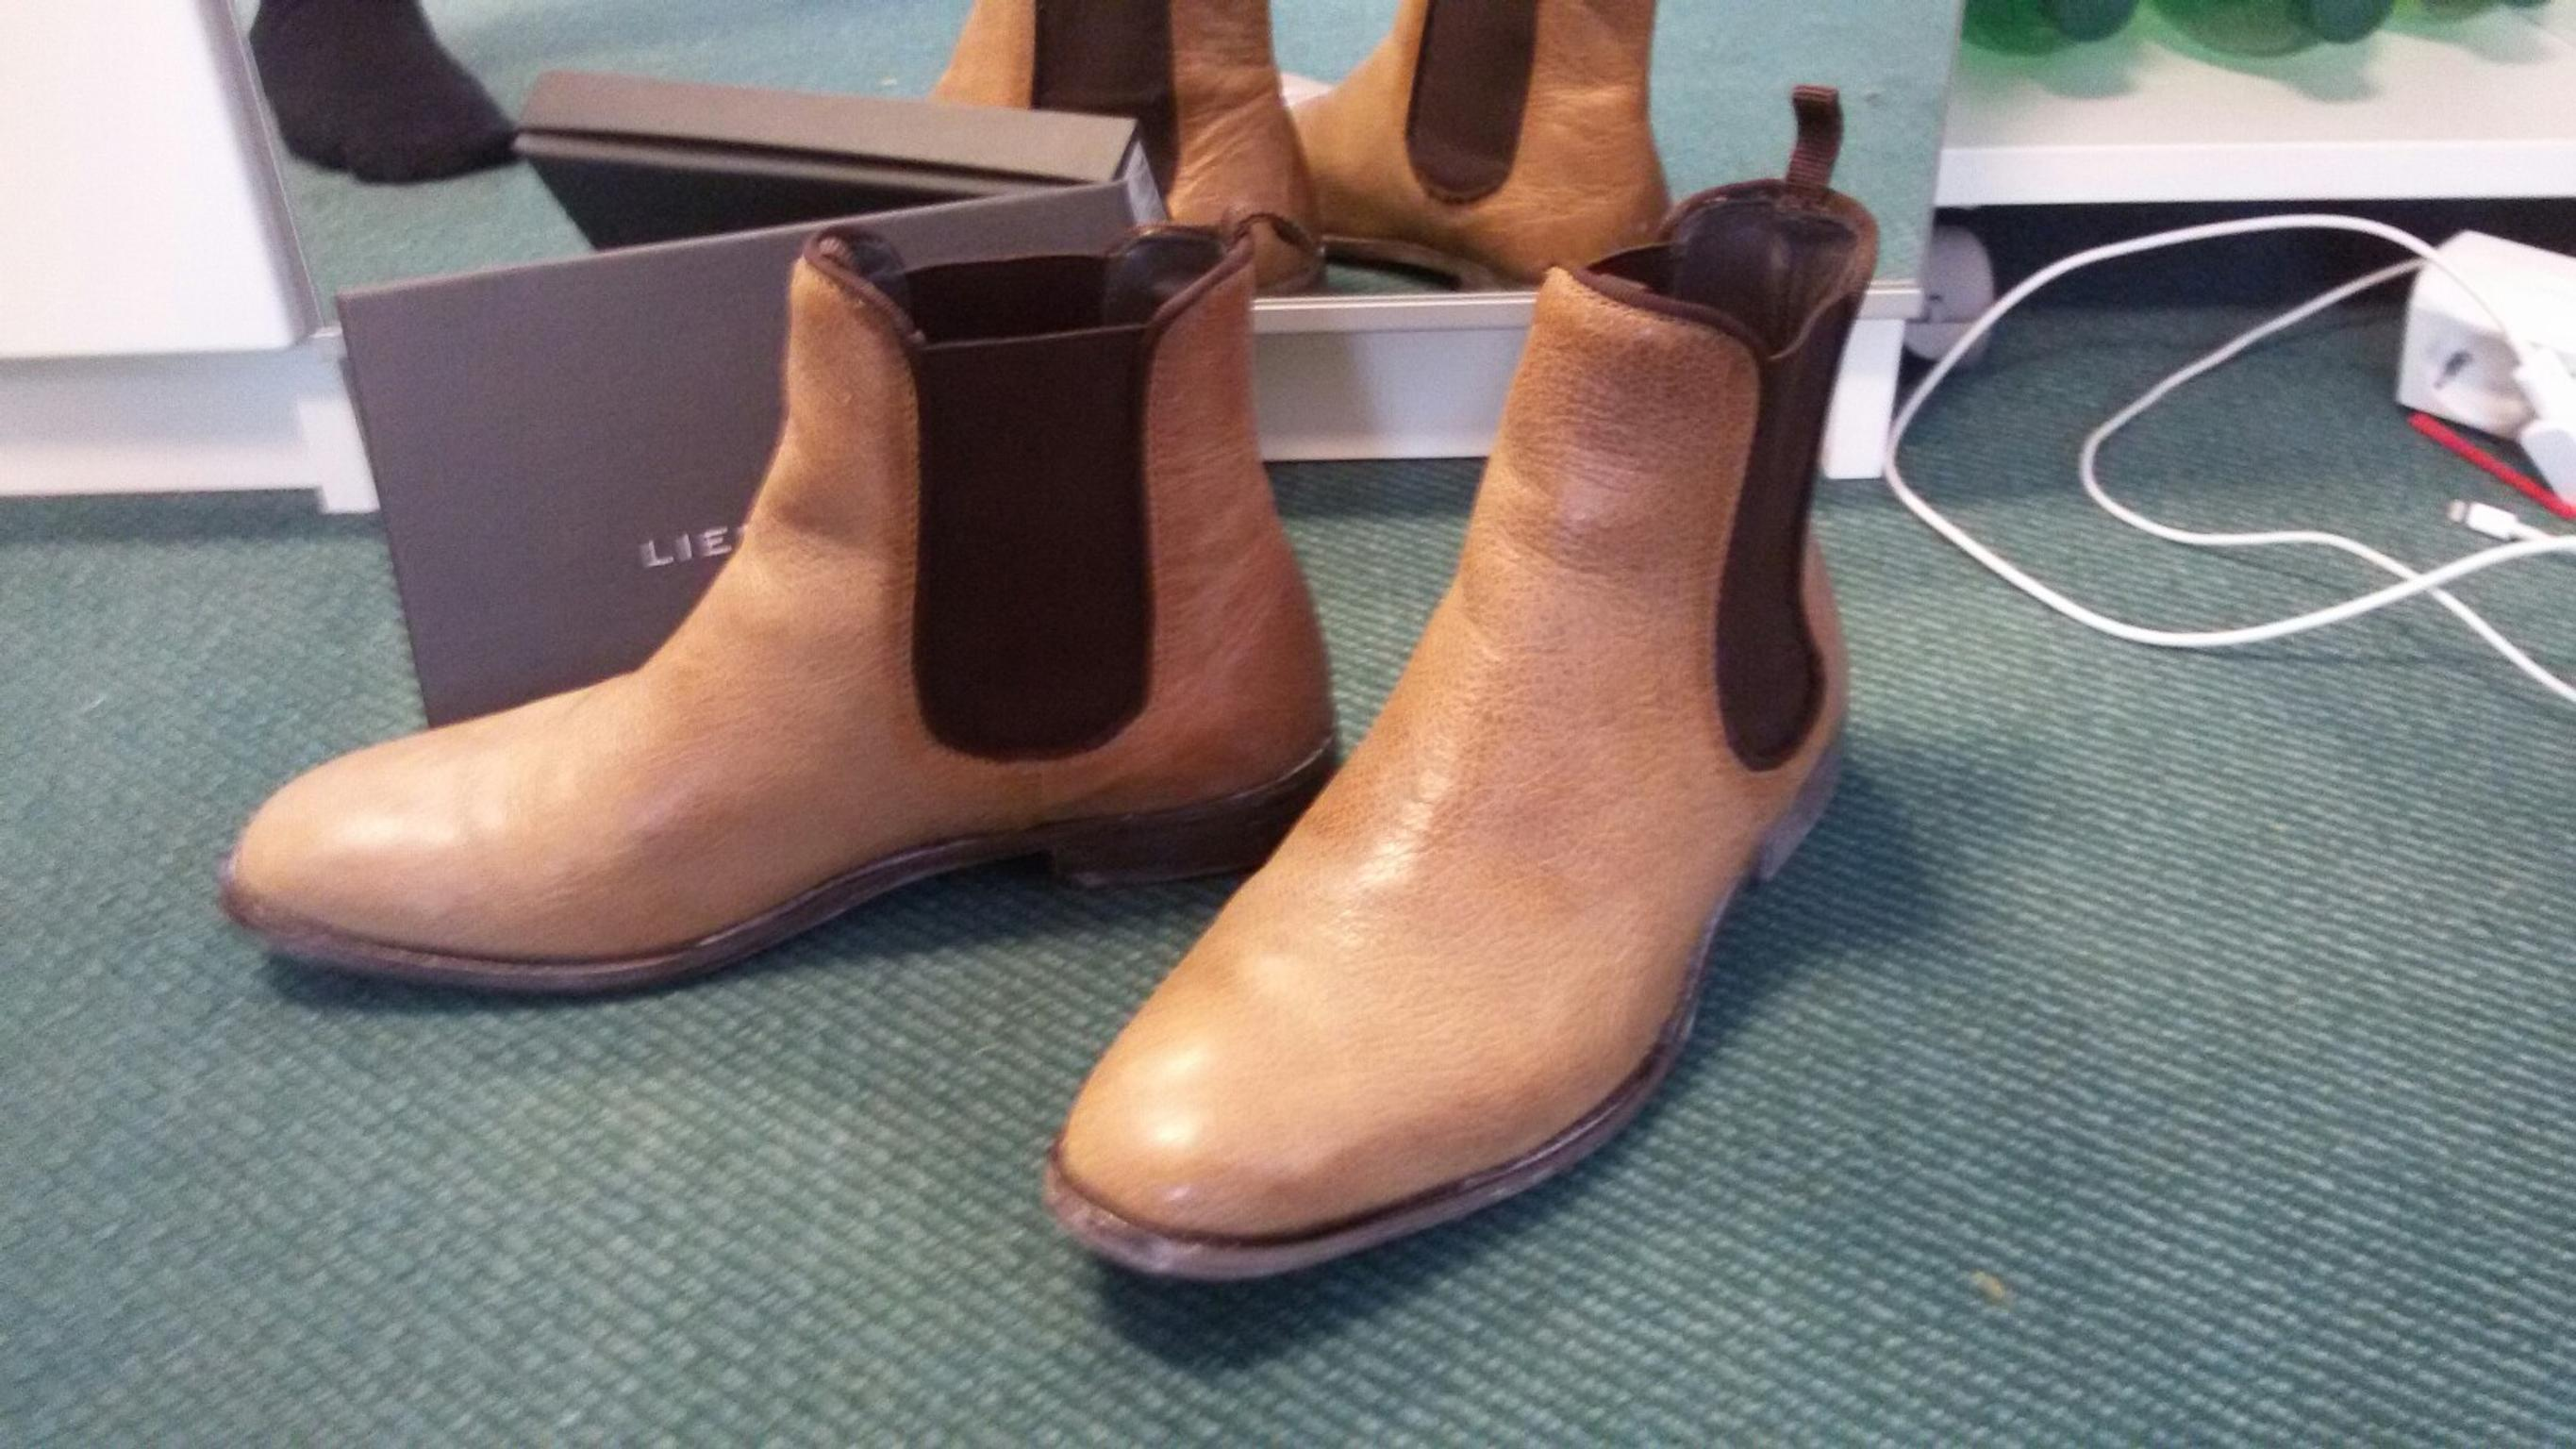 timeless design 3775c 3ace2 Liebeskind Chelsea Boots Gr. 39